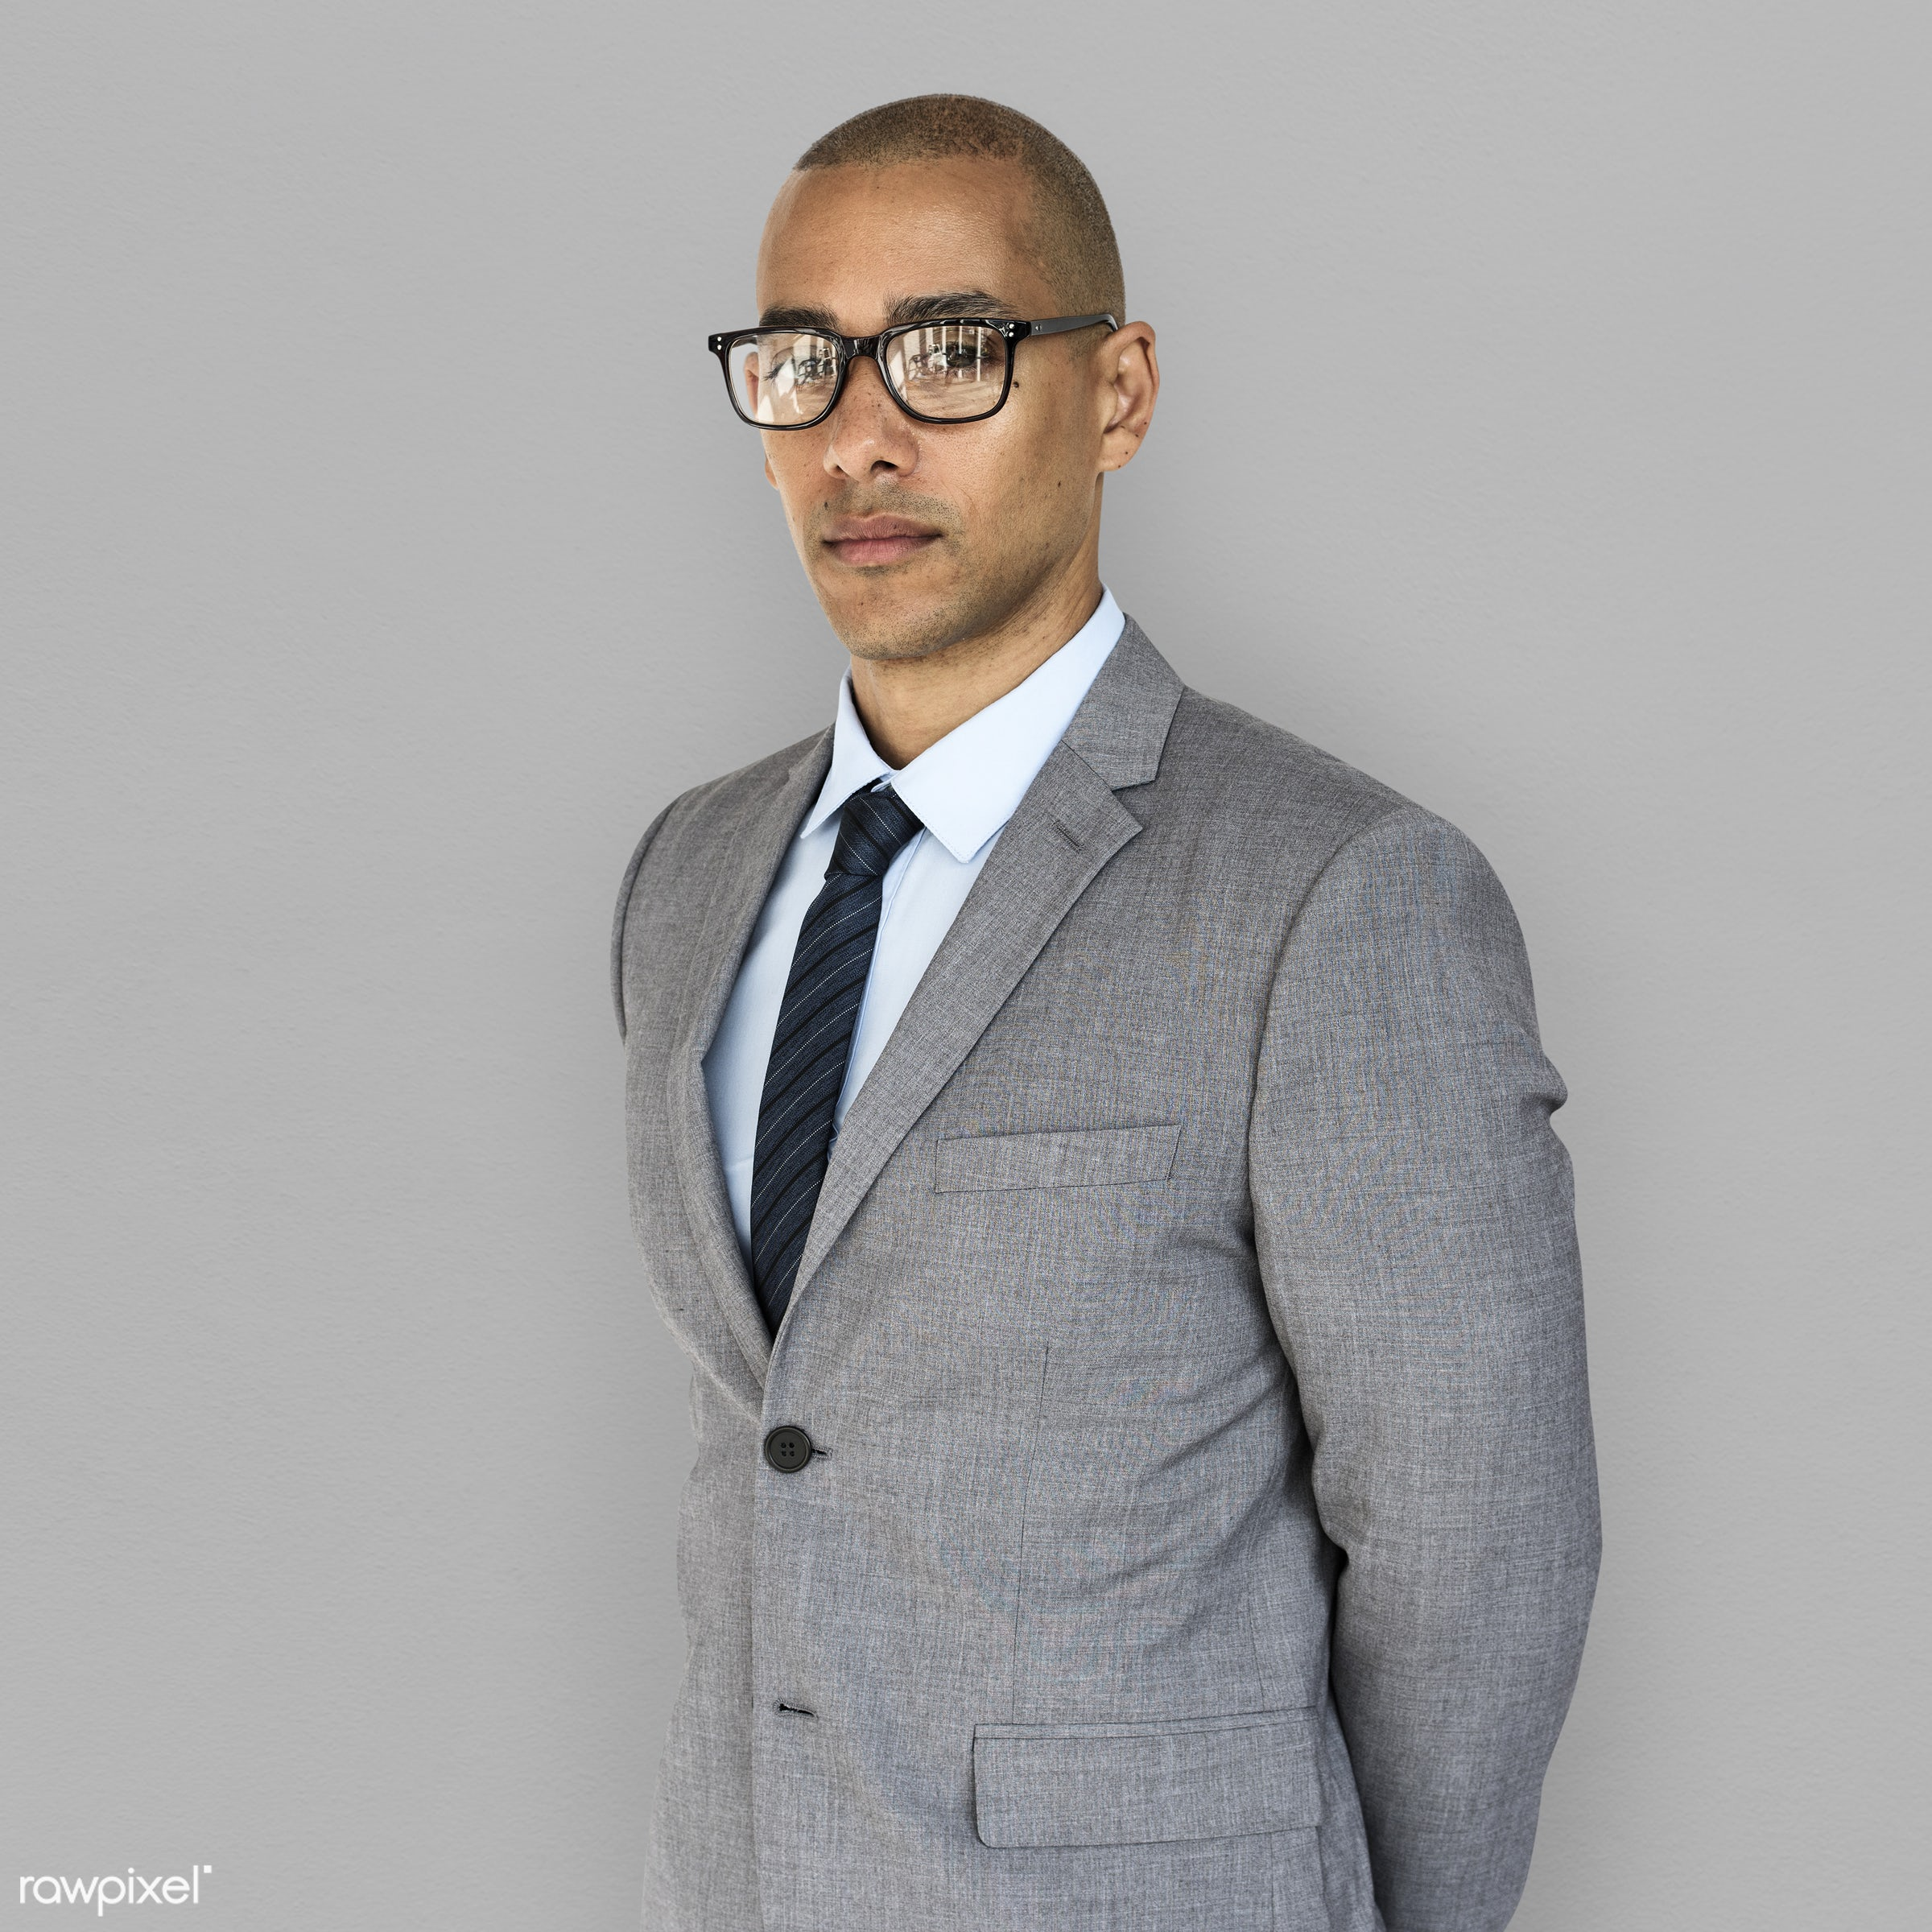 expression, studio, person, business wear, poker face, people, business, pose, man, formal attire, isolated, formal wear,...